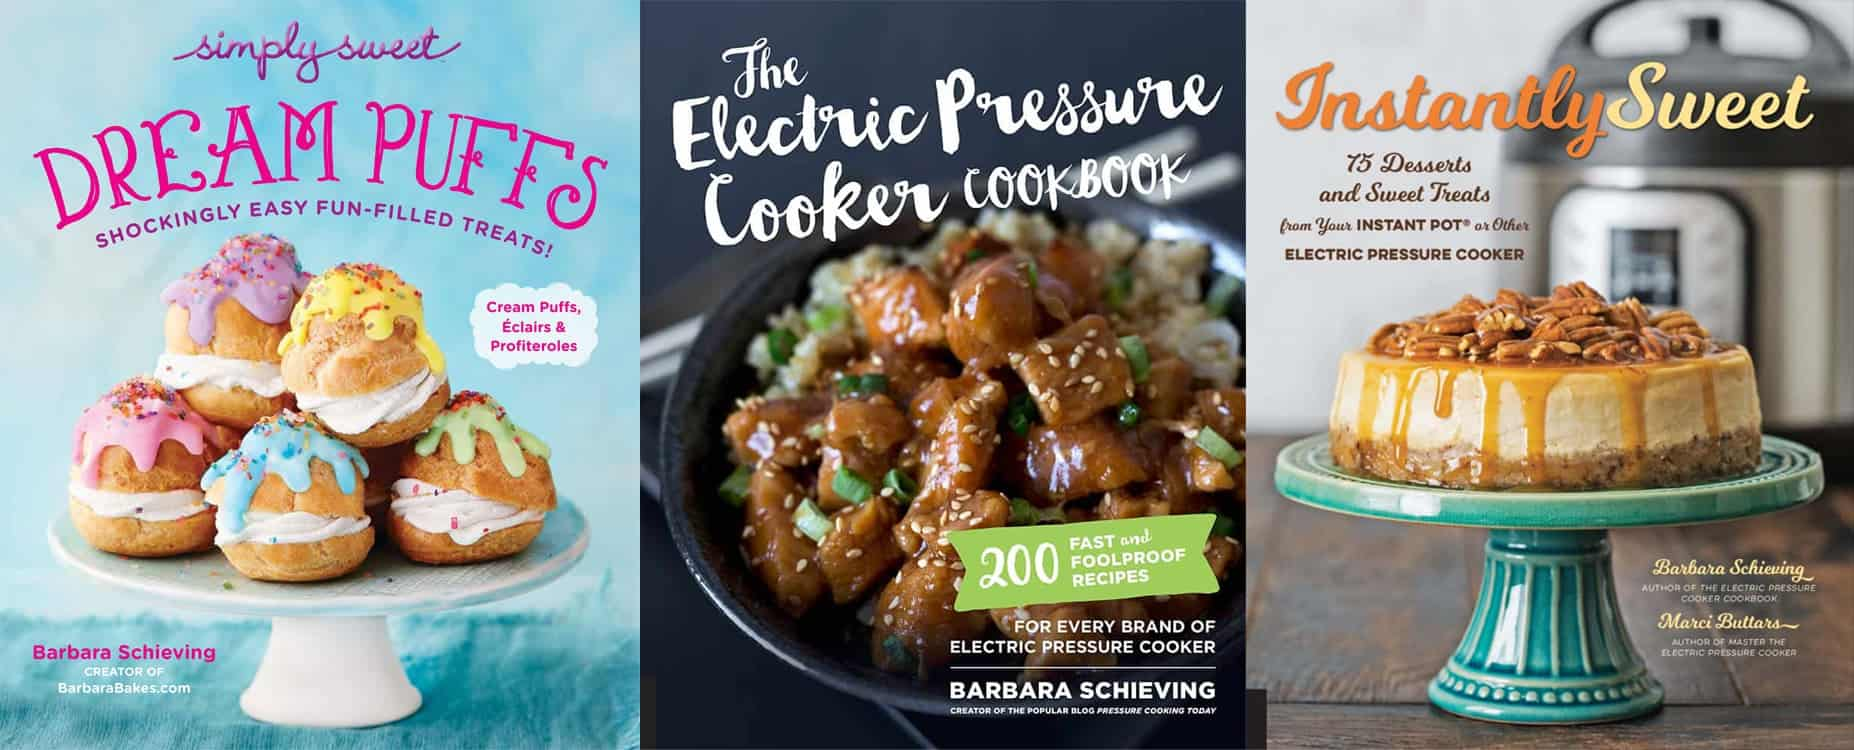 All three of Barbara Schieving\'s cookbooks: Dream Puffs, The Electric Pressure Cooker Cookbook, and Instantly Sweet